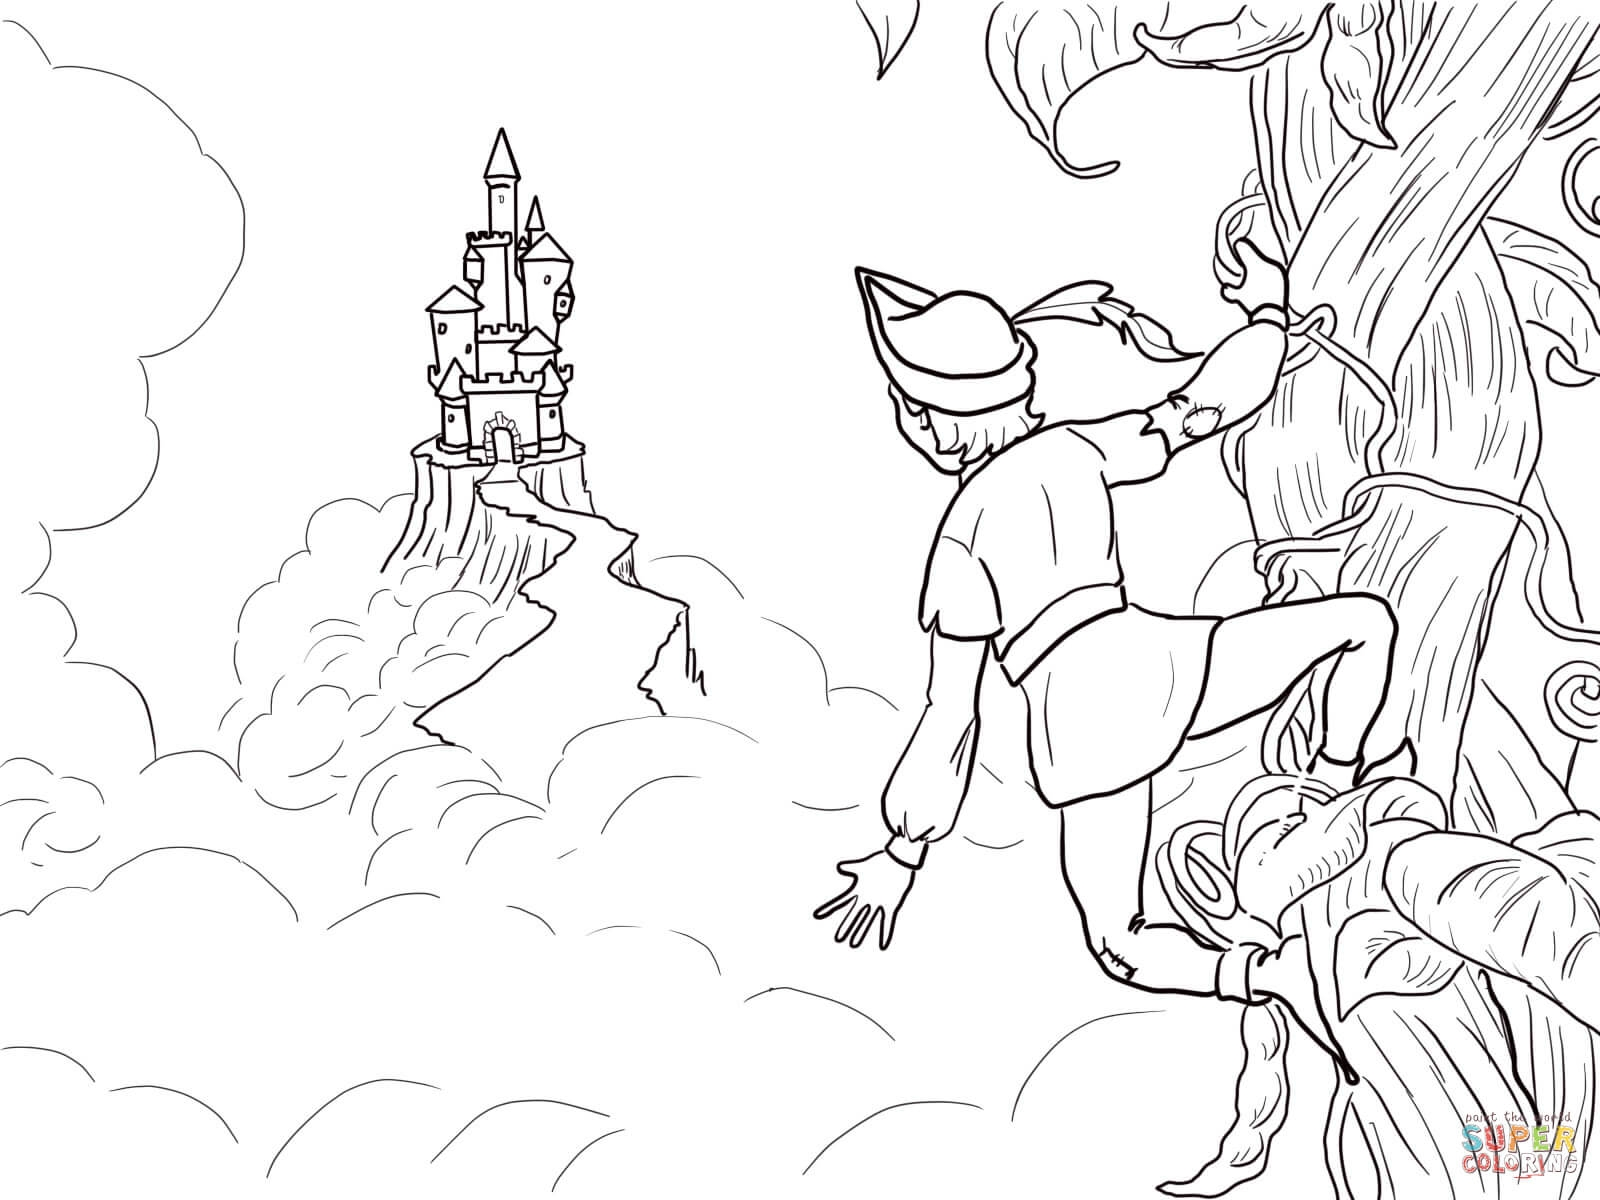 jack and the beanstalk coloring pages - jack and the beanstalk castle